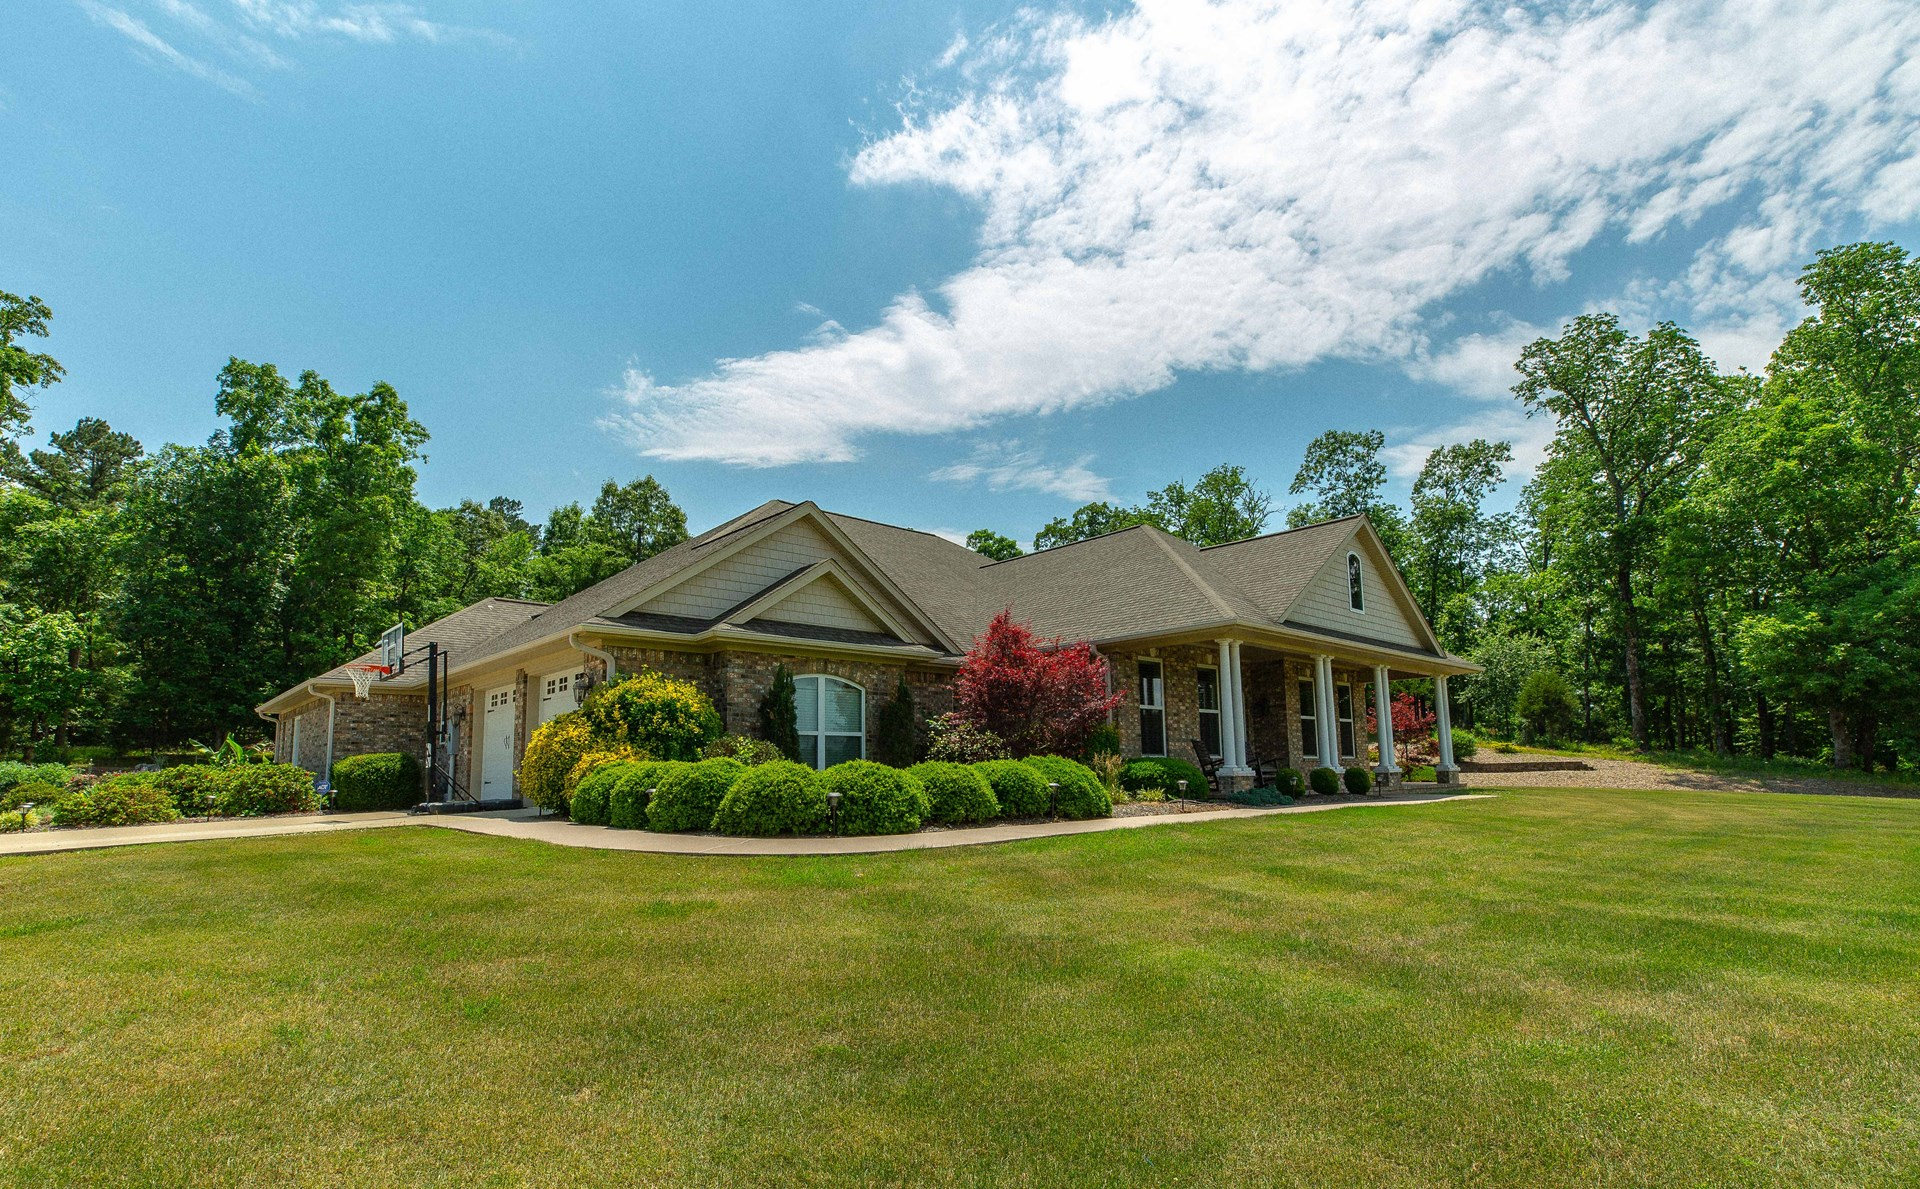 Home with Acreage for Sale in Arkansas